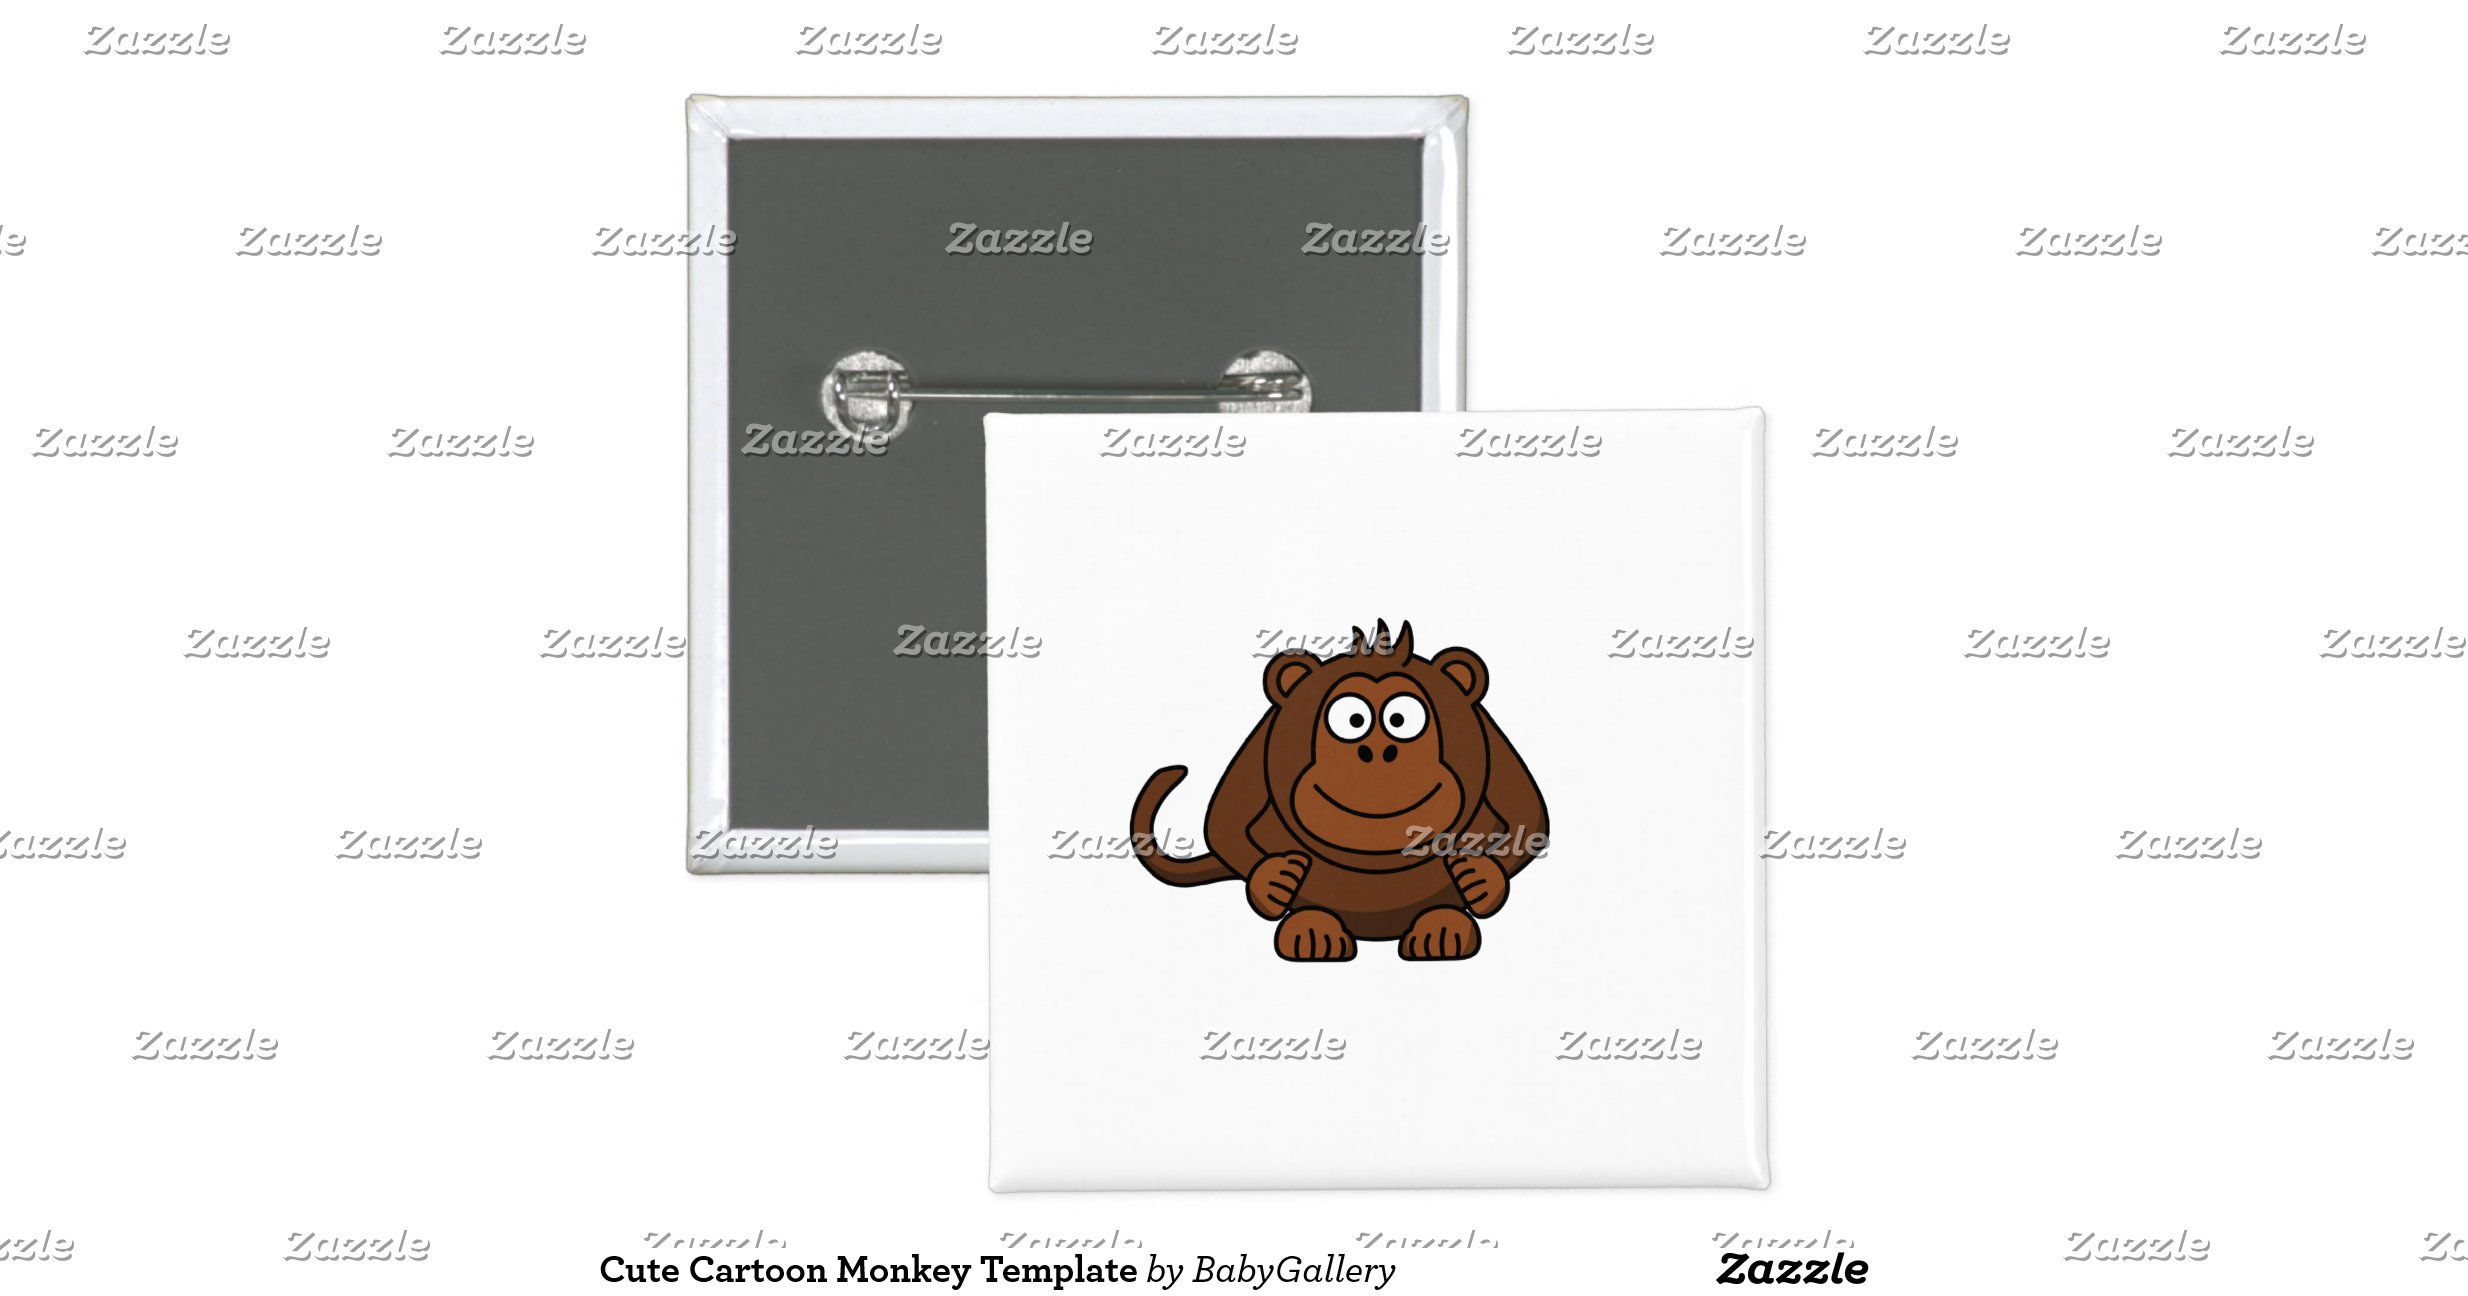 cute cartoon monkey template 2 inch square button rba86aaa4d60248b9b7d659e6167134a5 x7j1a 8byvr. Black Bedroom Furniture Sets. Home Design Ideas